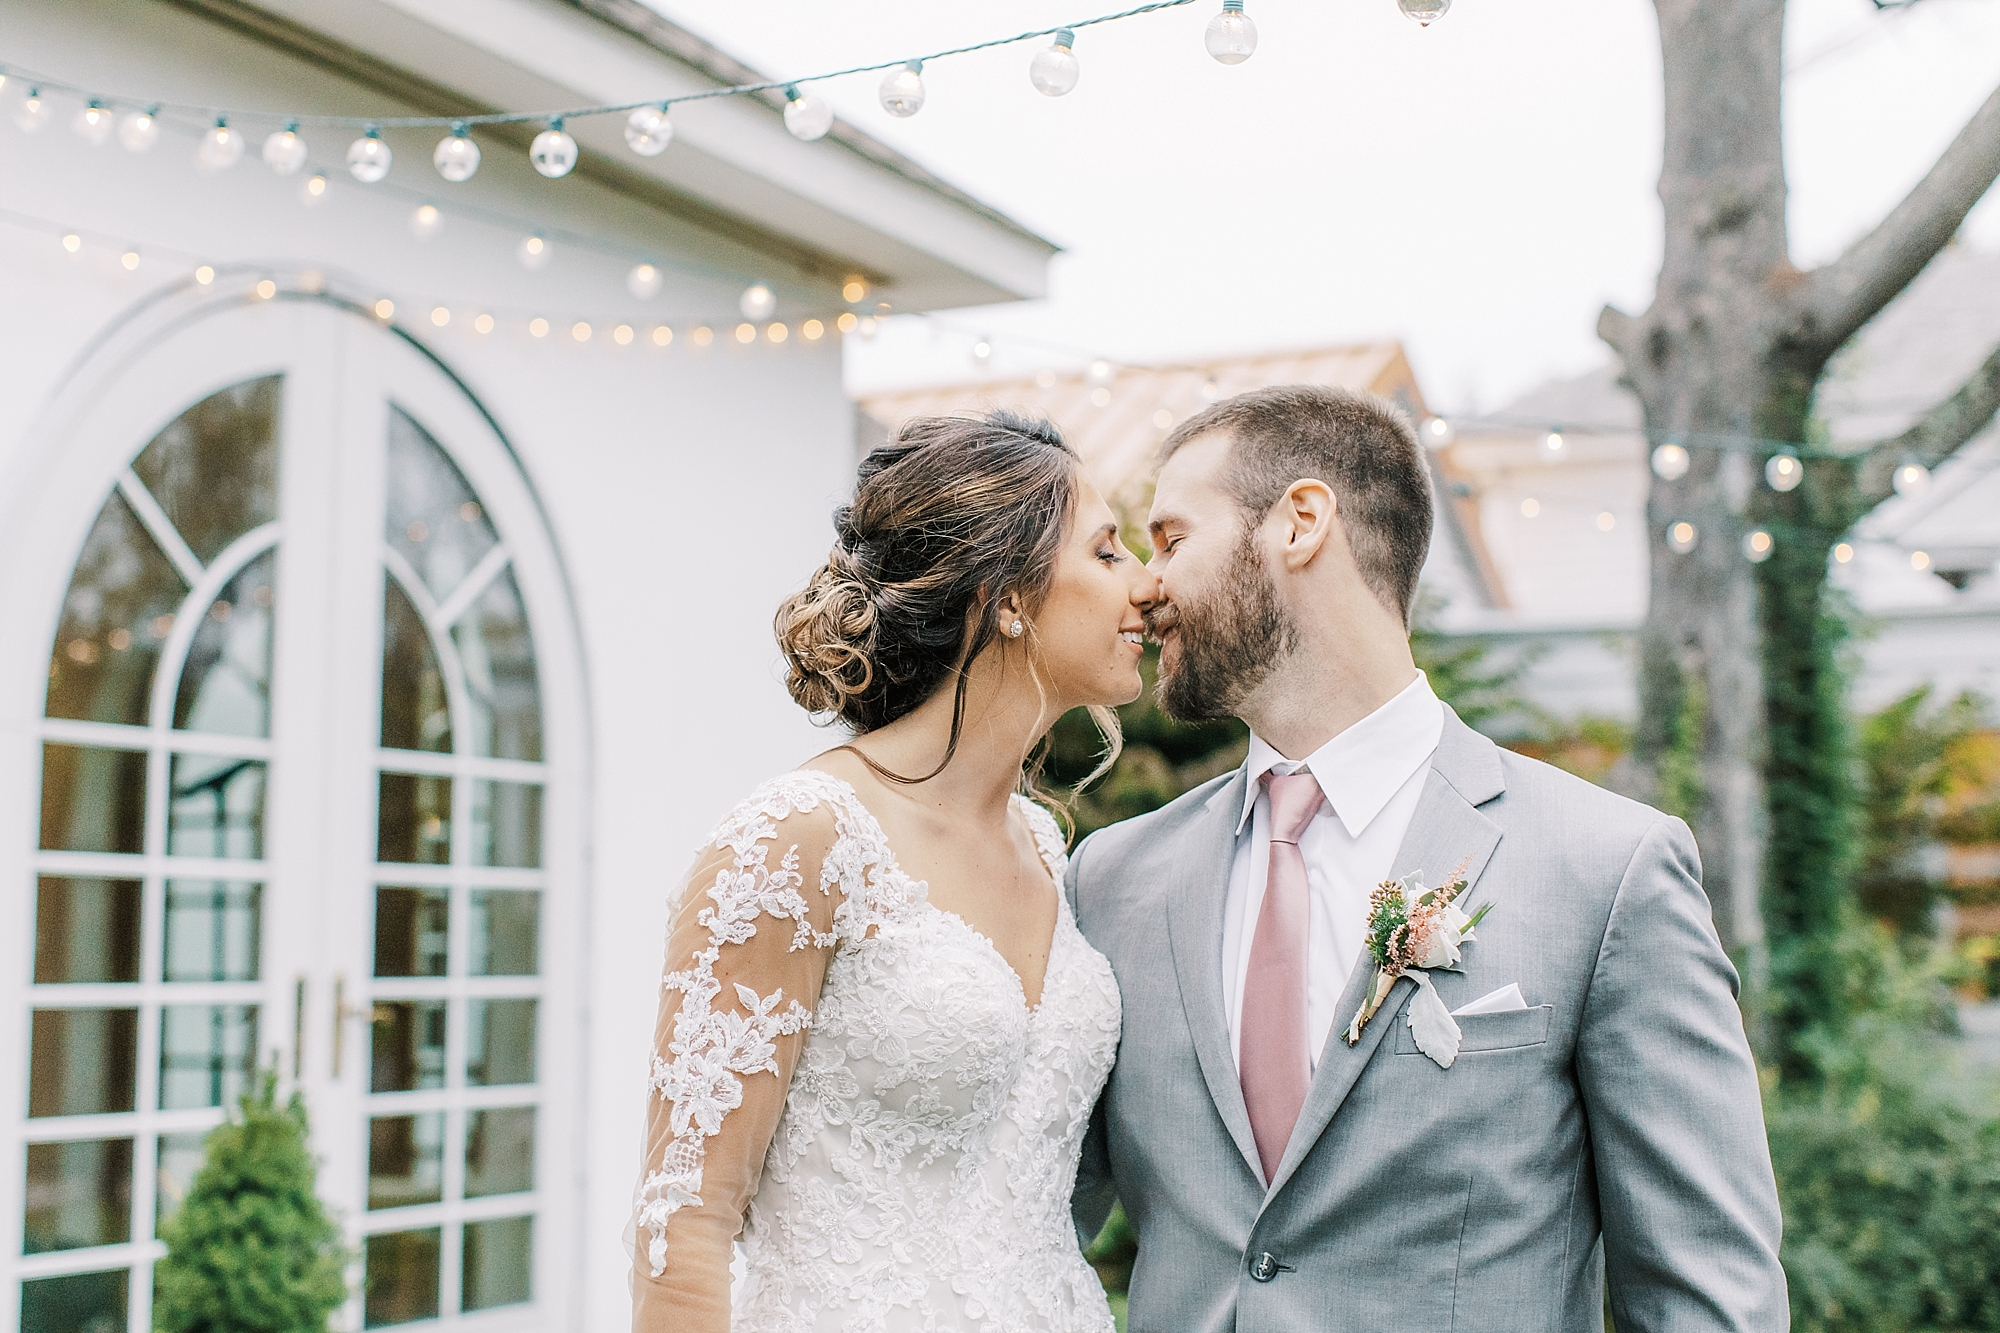 Sweet Garden Wedding Photography Abbie Holmes Estate in Cape May NJ by Magdalena Studios 0056